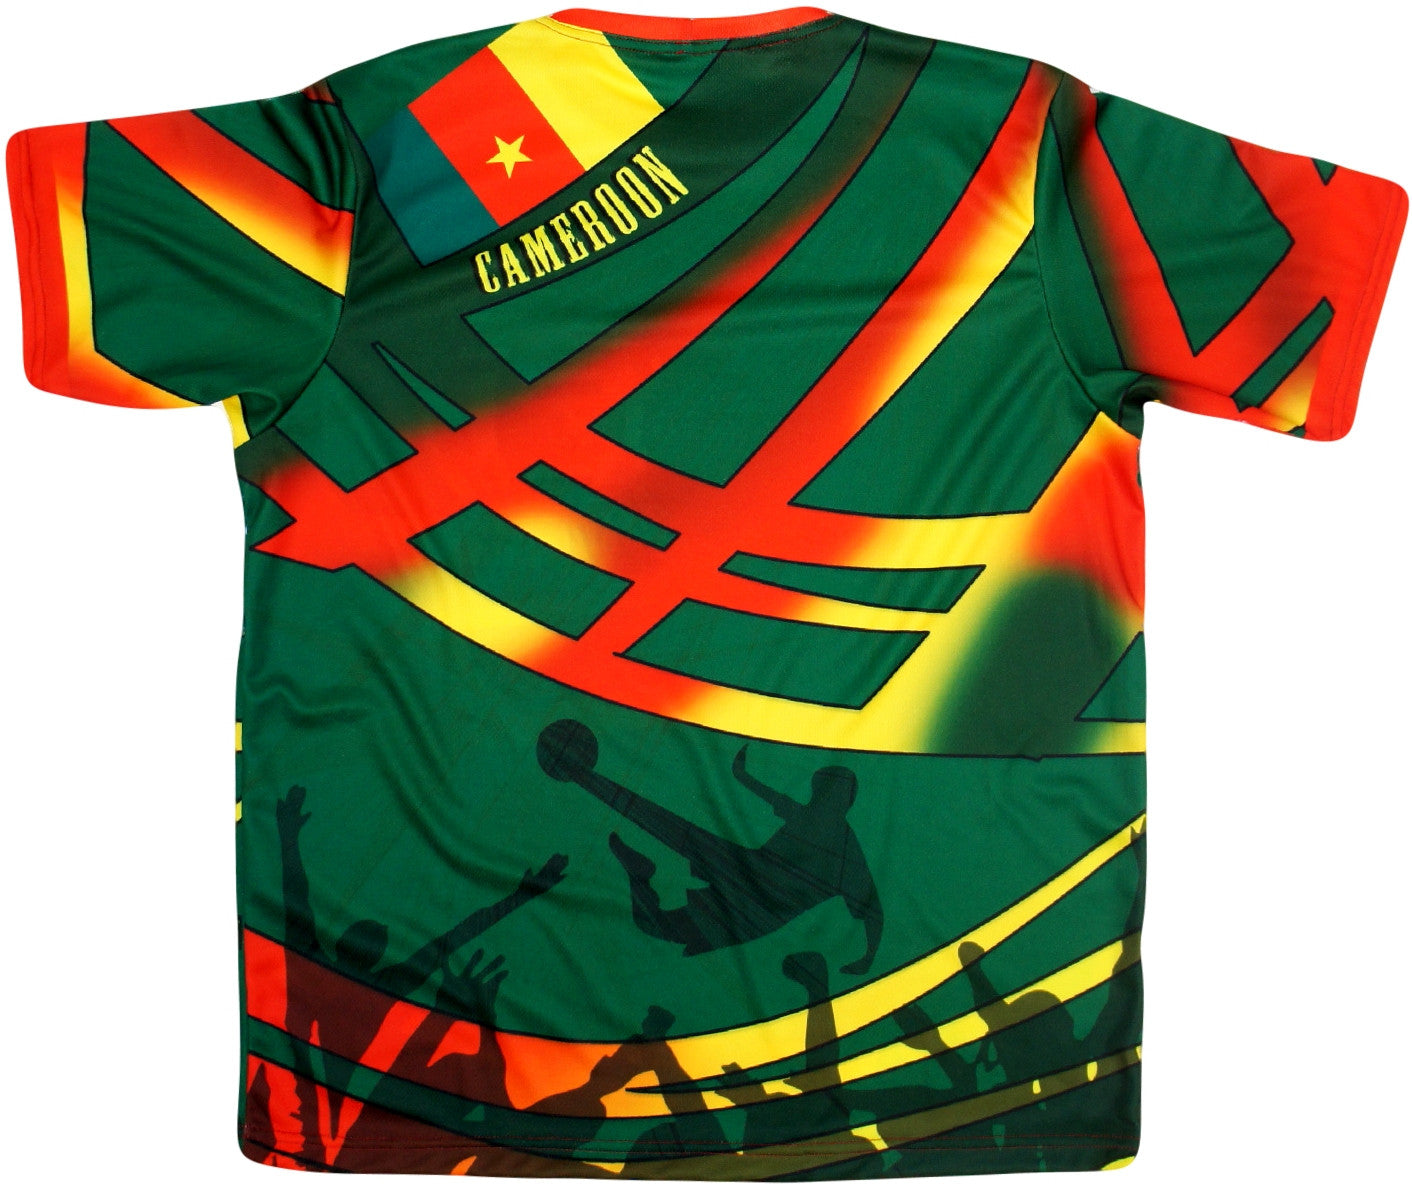 Cameroon 2014 World Jersey - And Still